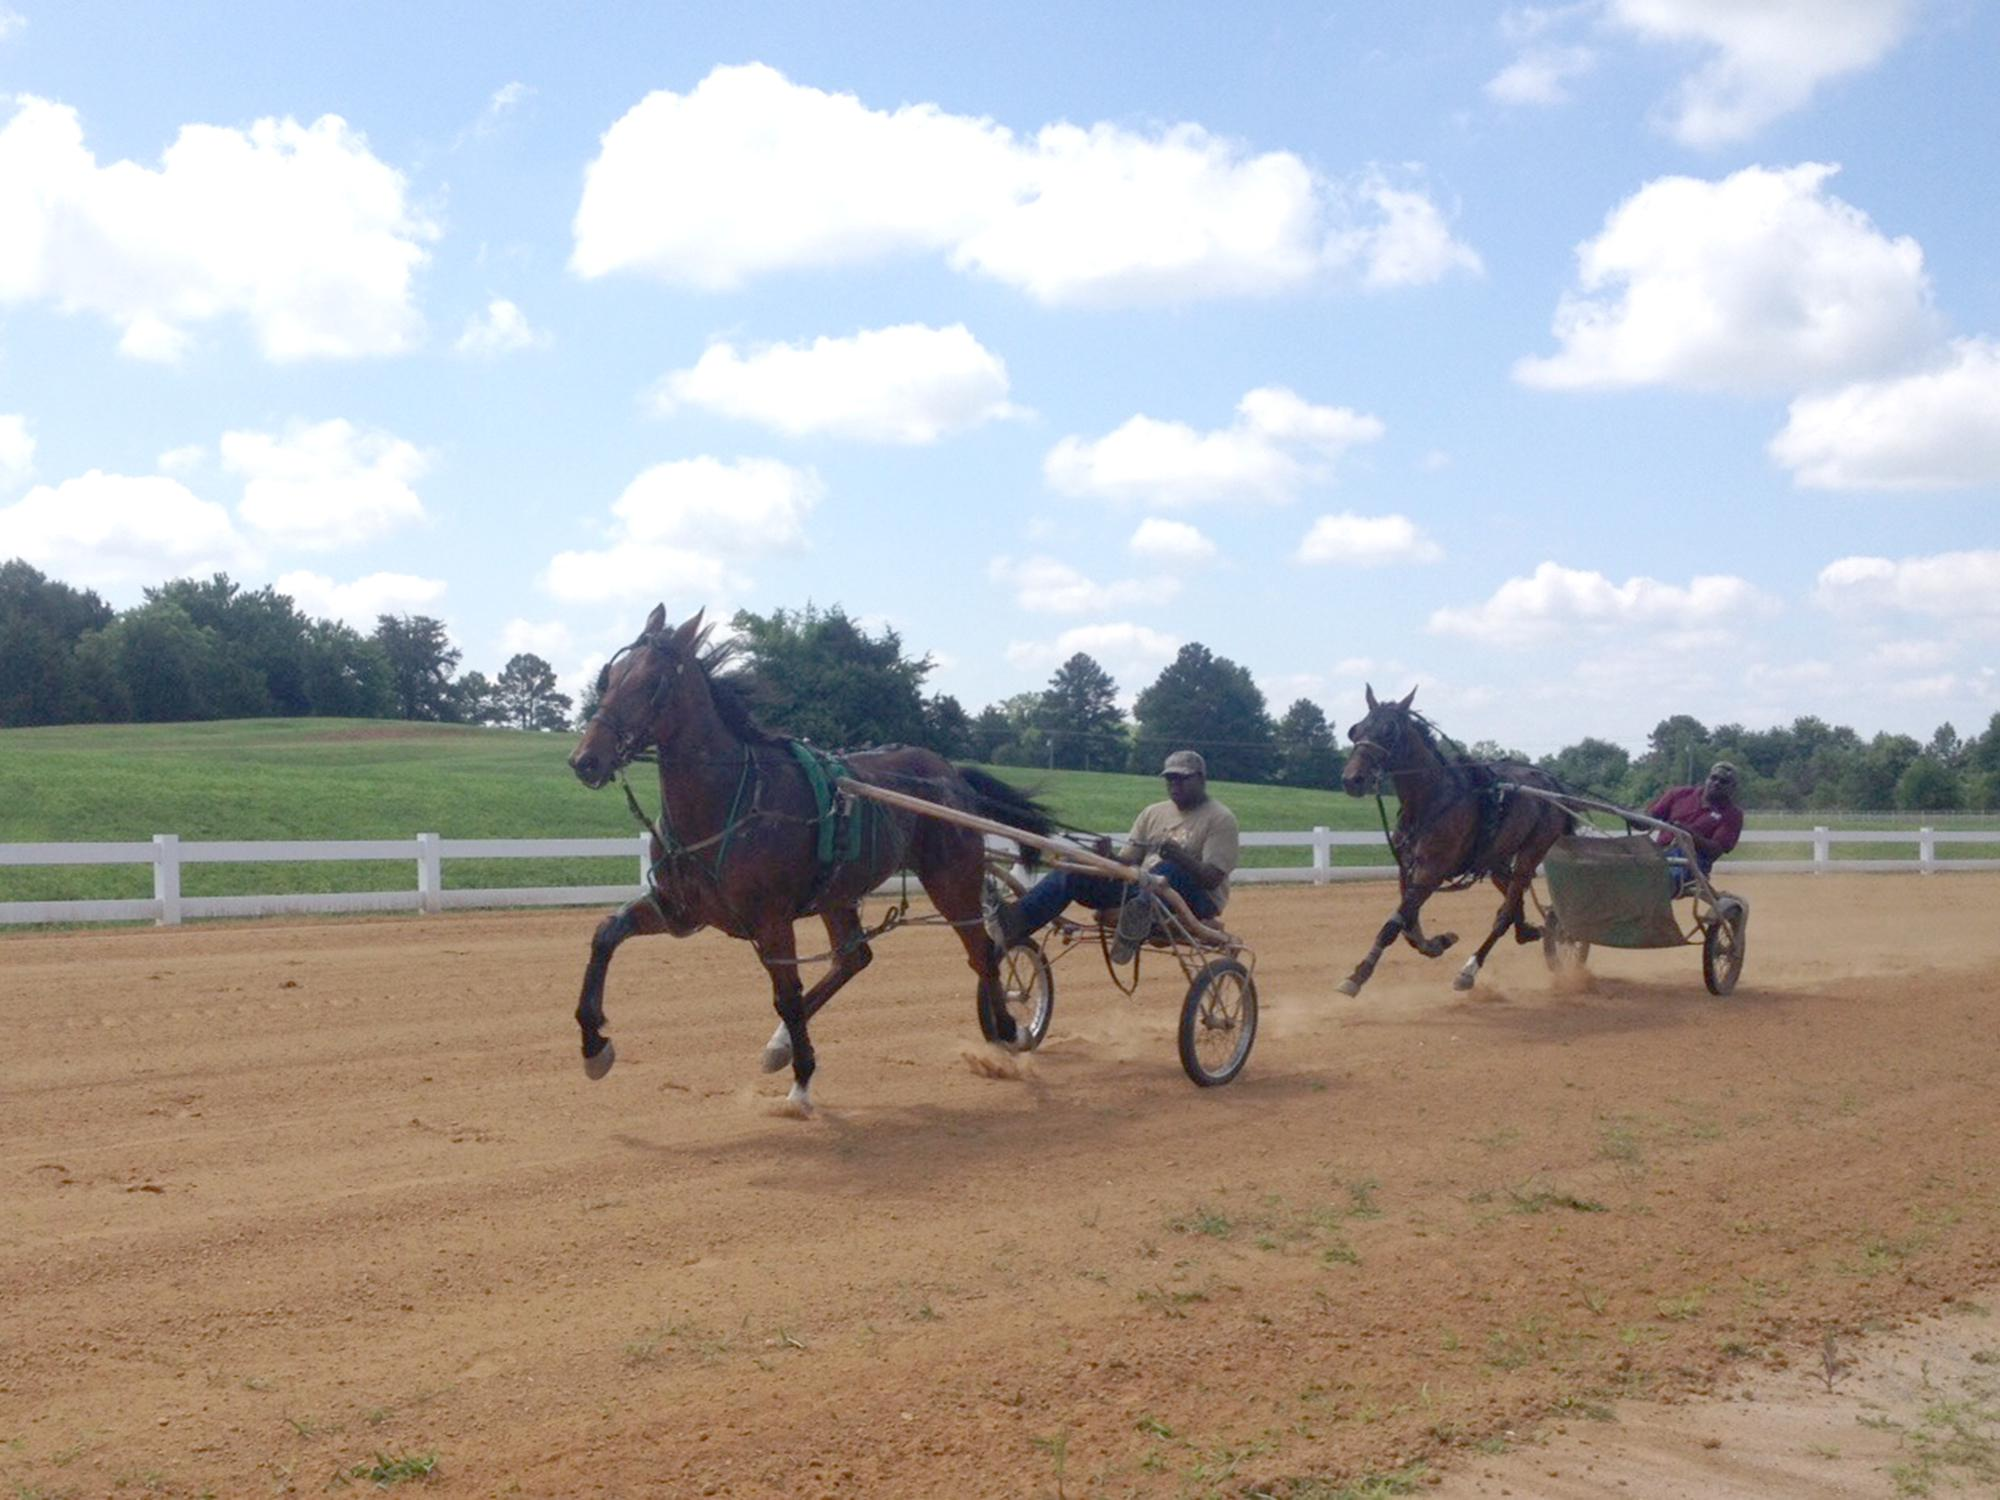 Harness racers take a practice run around the newly renovated track at the Mississippi Horse Park near Starkville. On May 22, sanctioned races will return to the complex, which is a division of the Mississippi State University Extension Service. (Submitted photo)